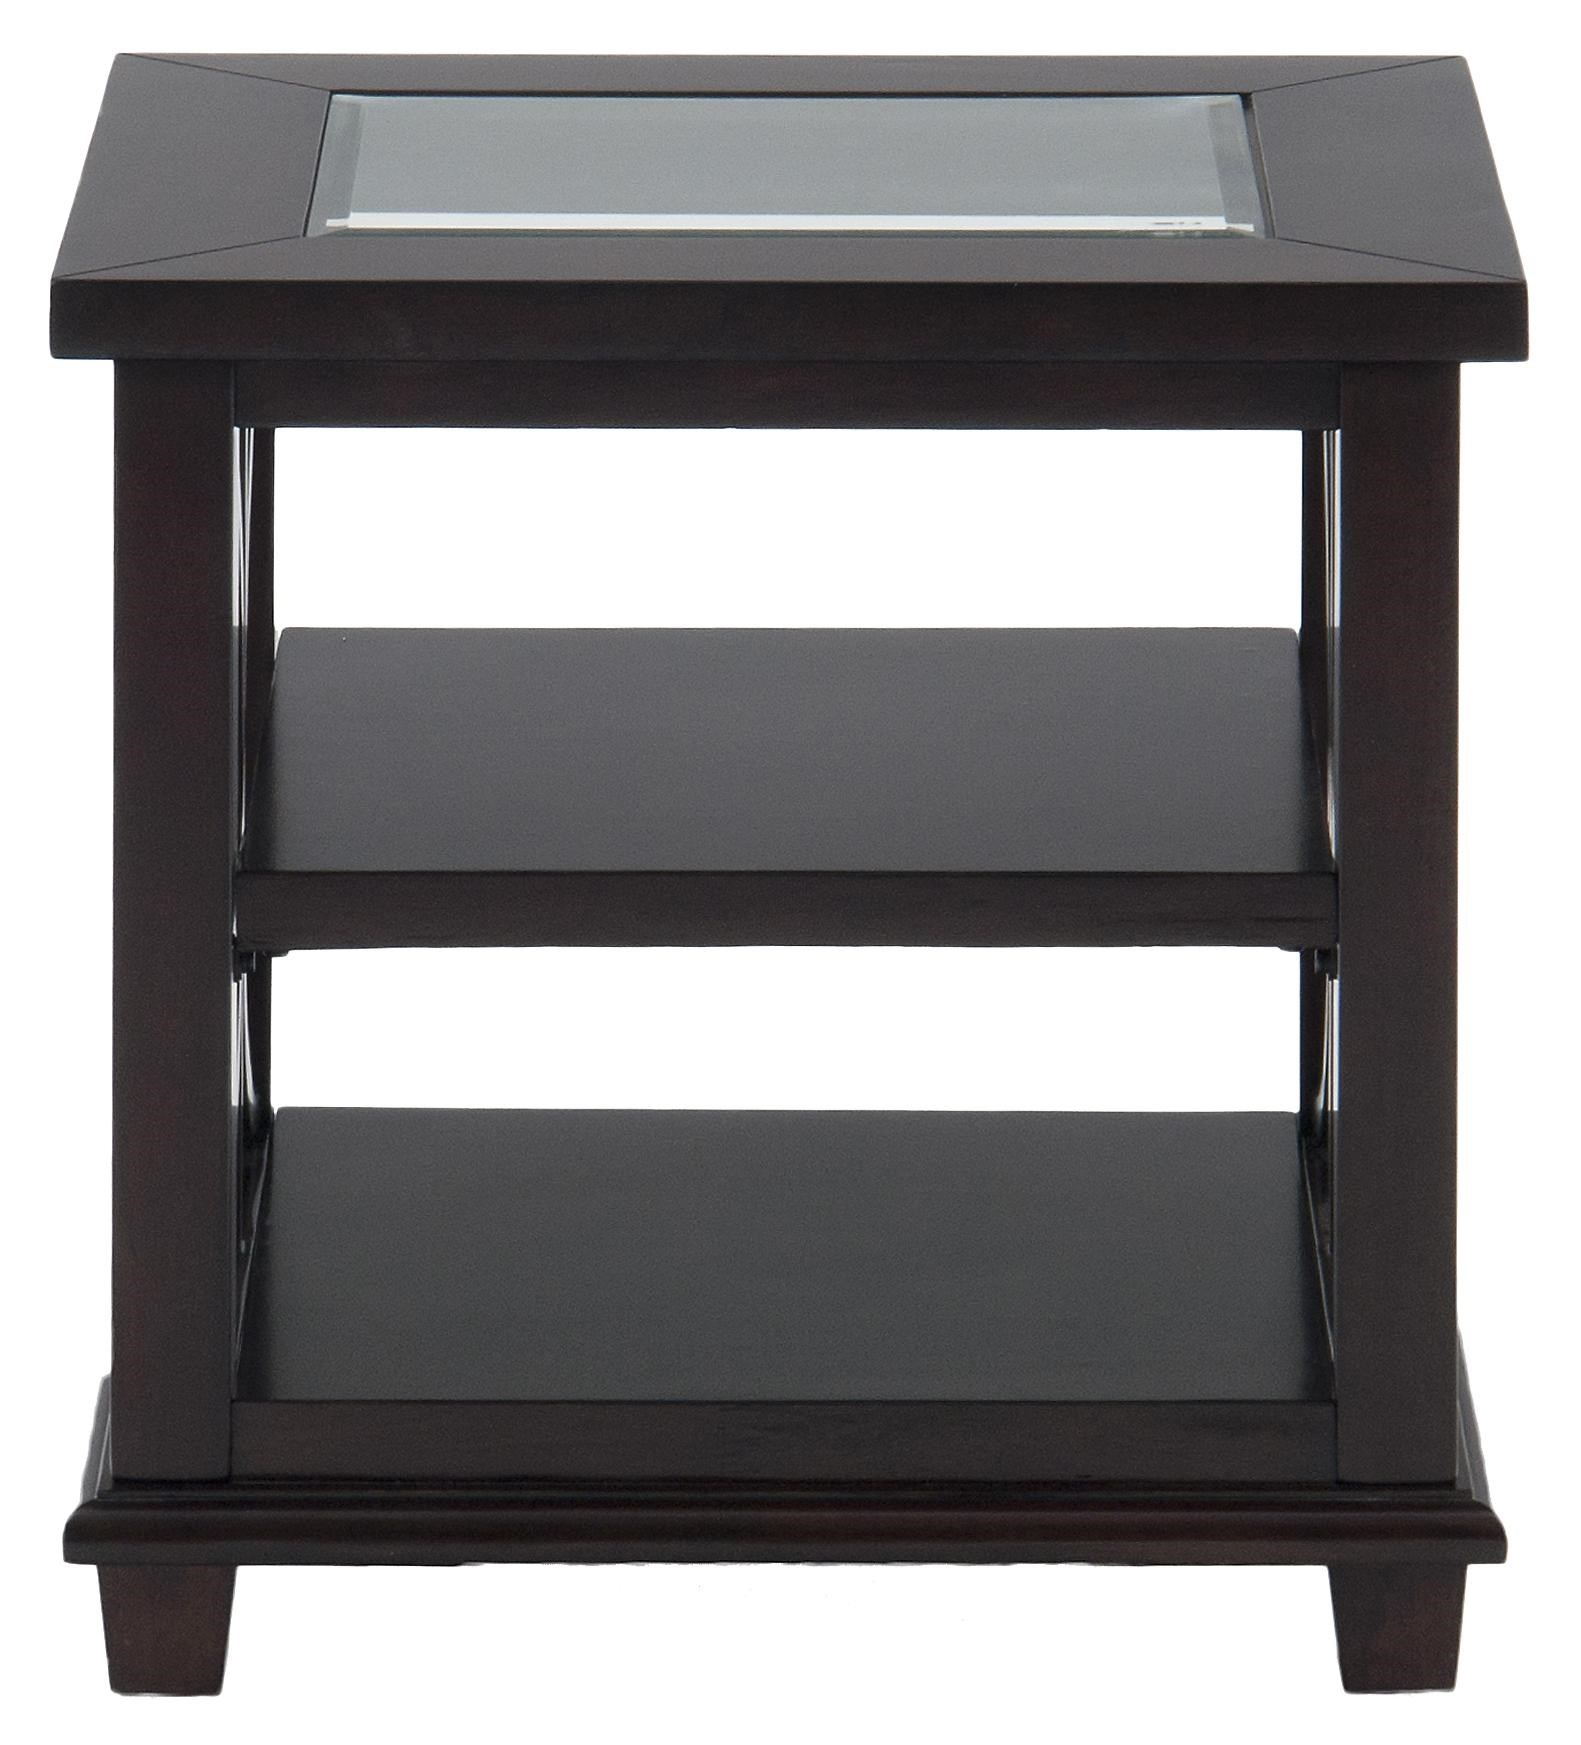 Contemporary Beveled Glass End Table with Concentric Circle Design